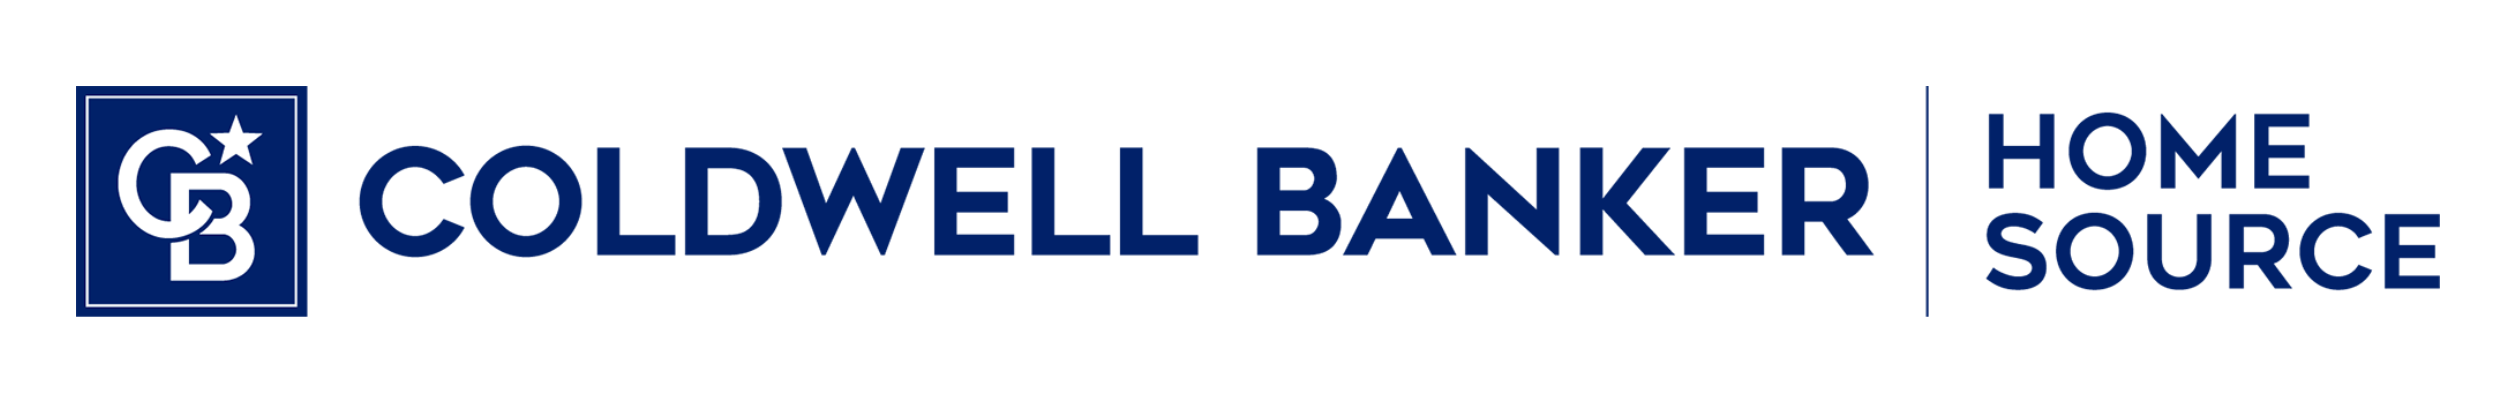 Coldwell Banker Home Source Logo